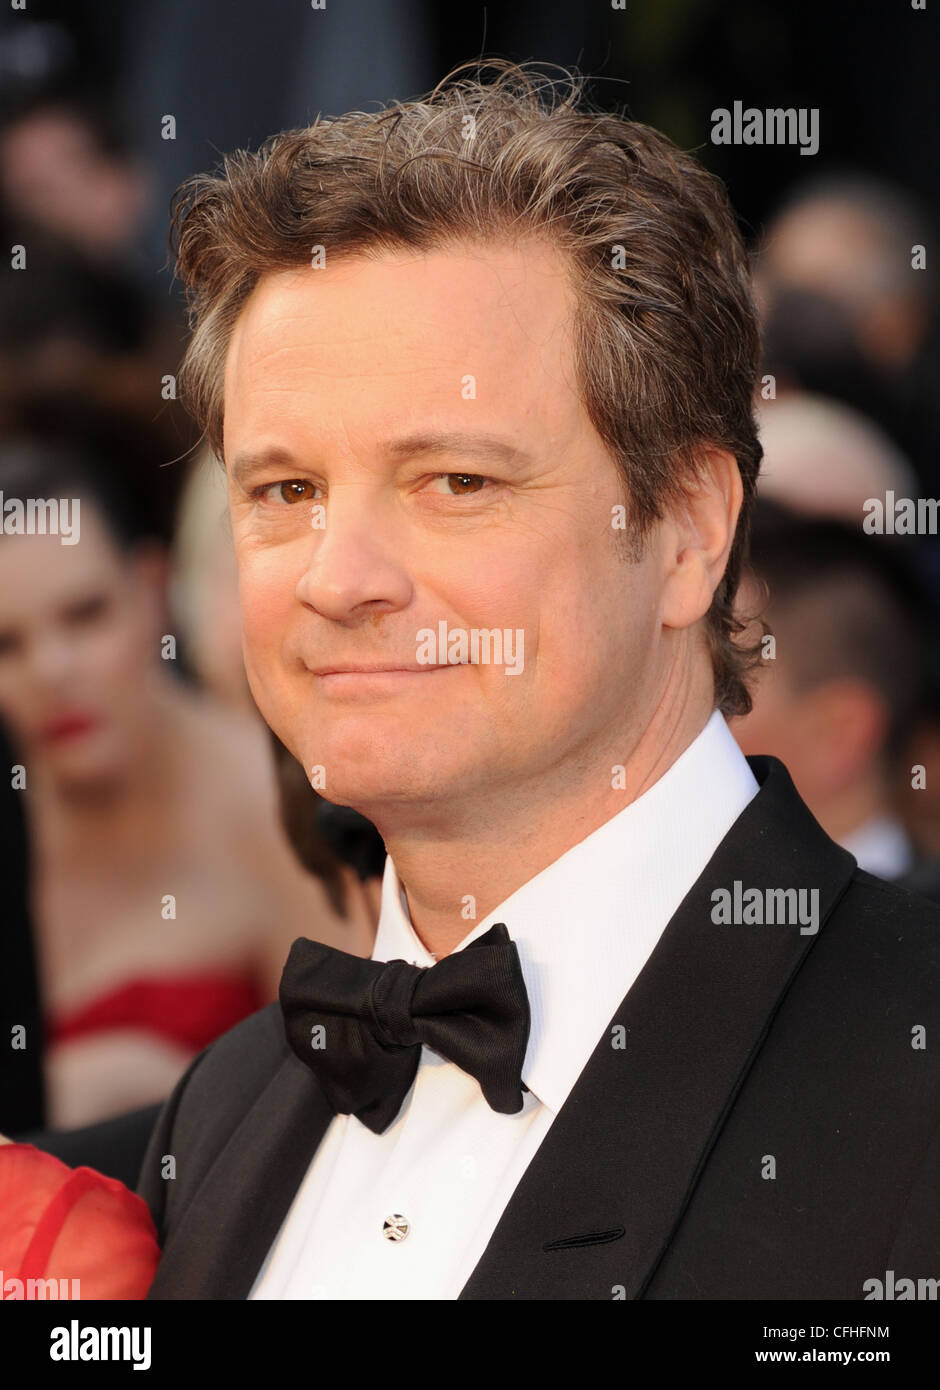 COLIN FIRTH UK Filmschauspieler im Februar 2012. Foto Jeffrey Mayer Stockbild